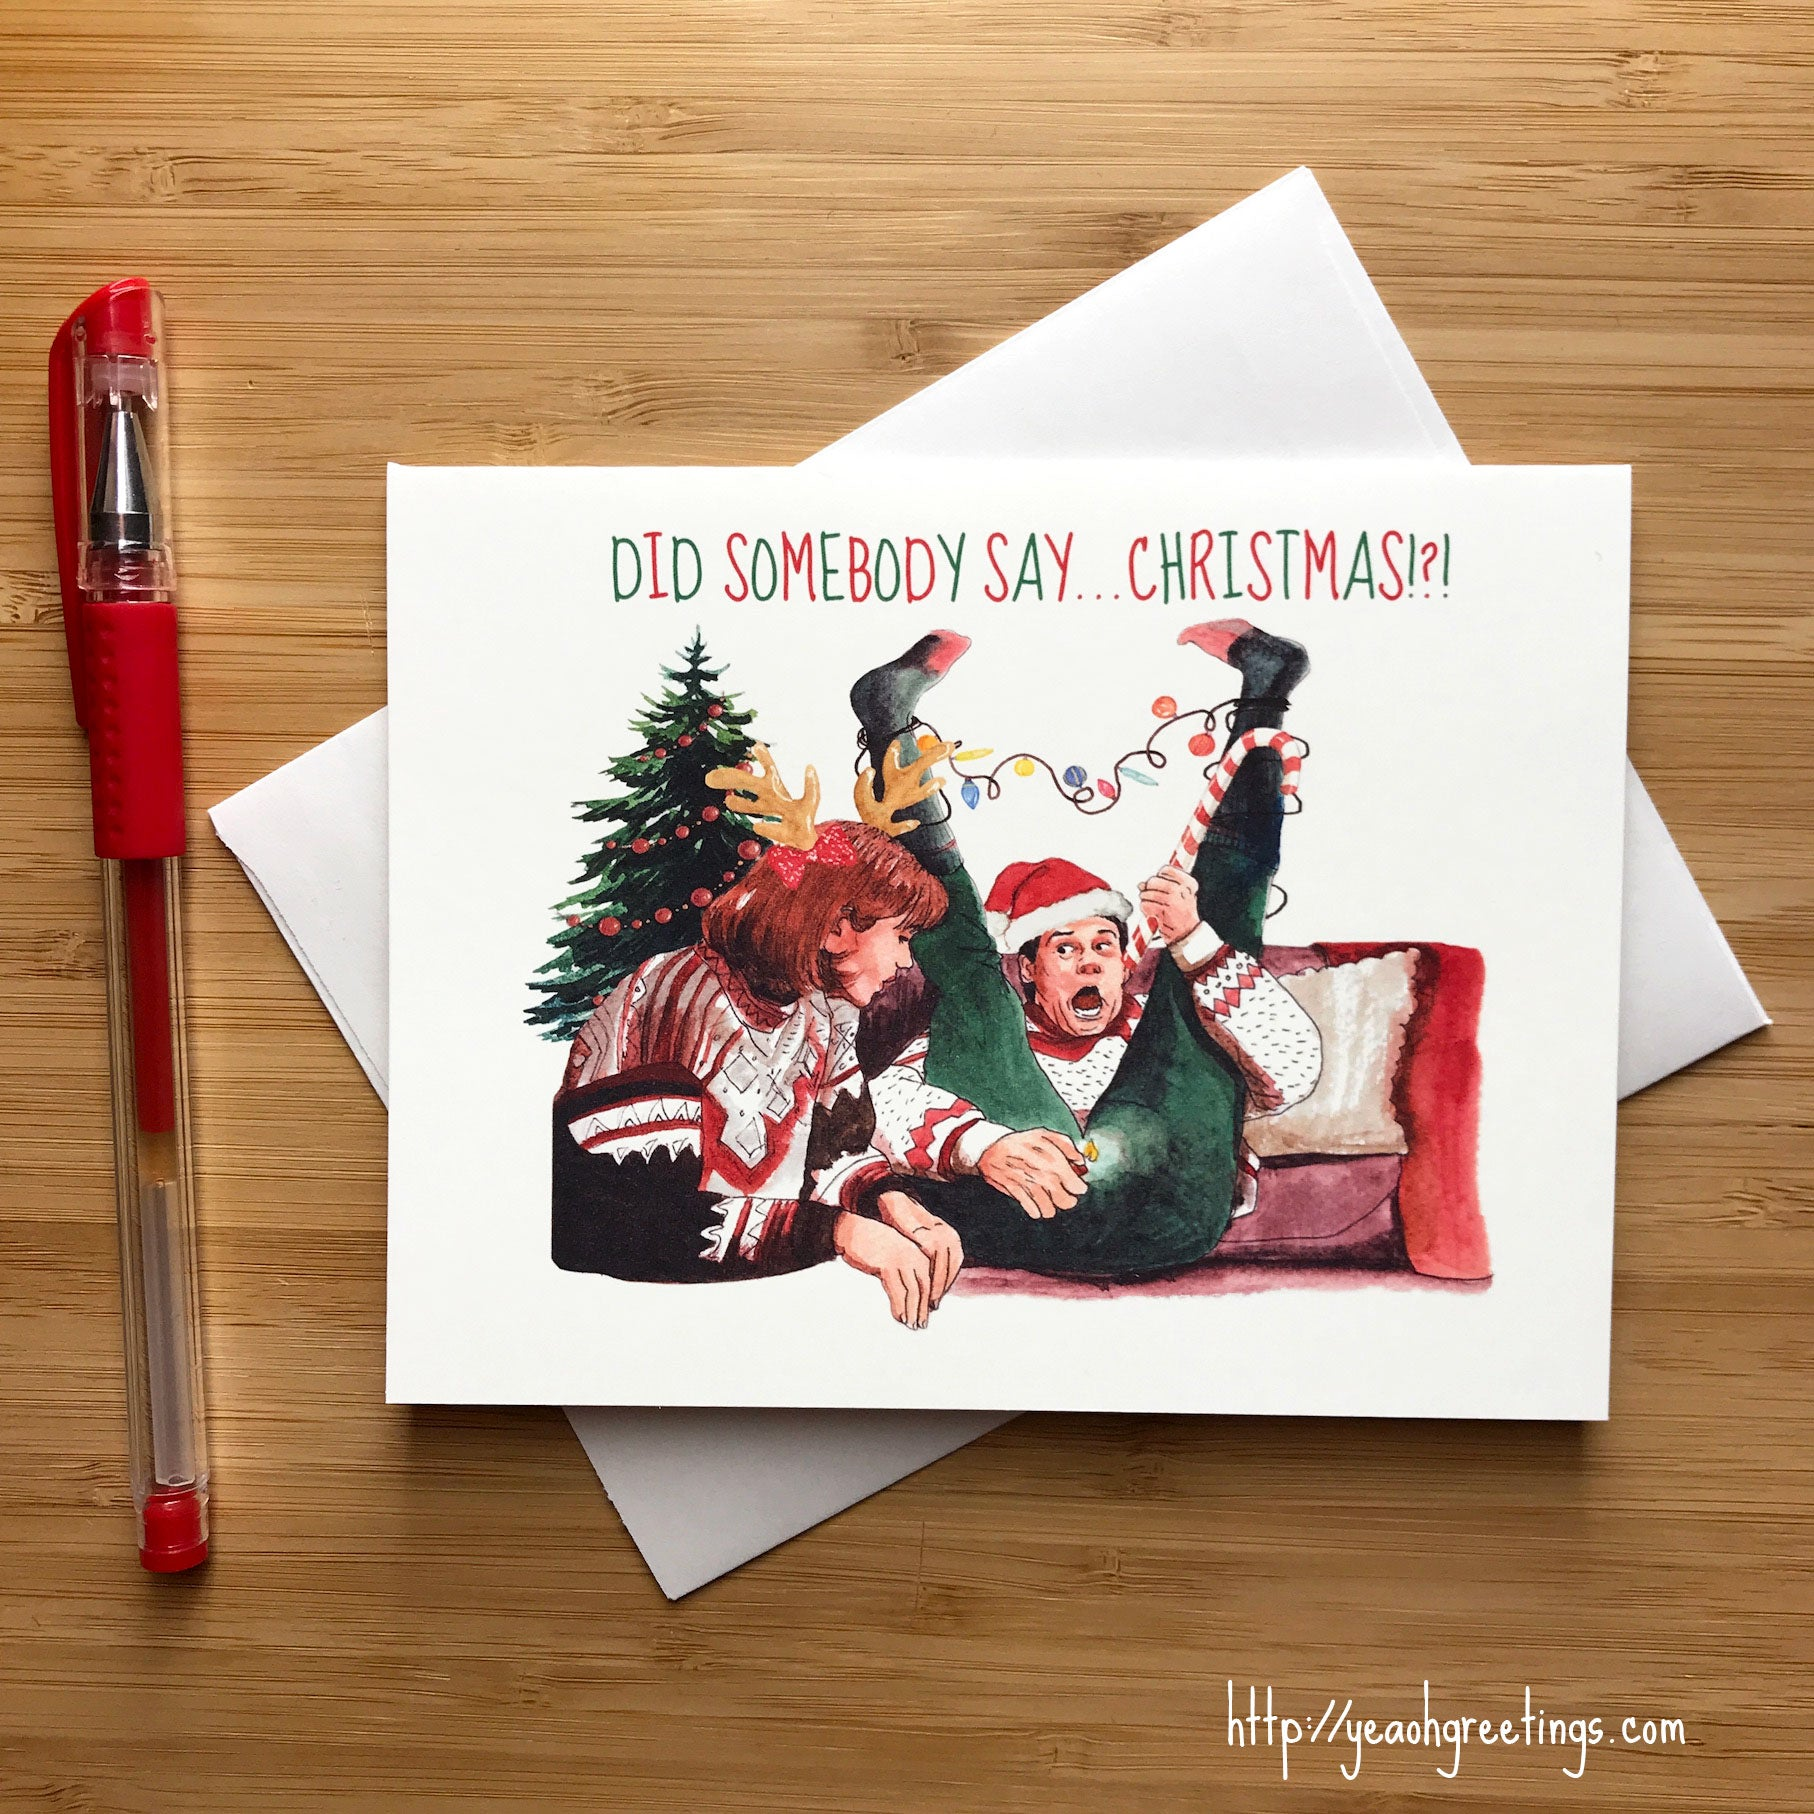 Dumb and Dumber Christmas Card